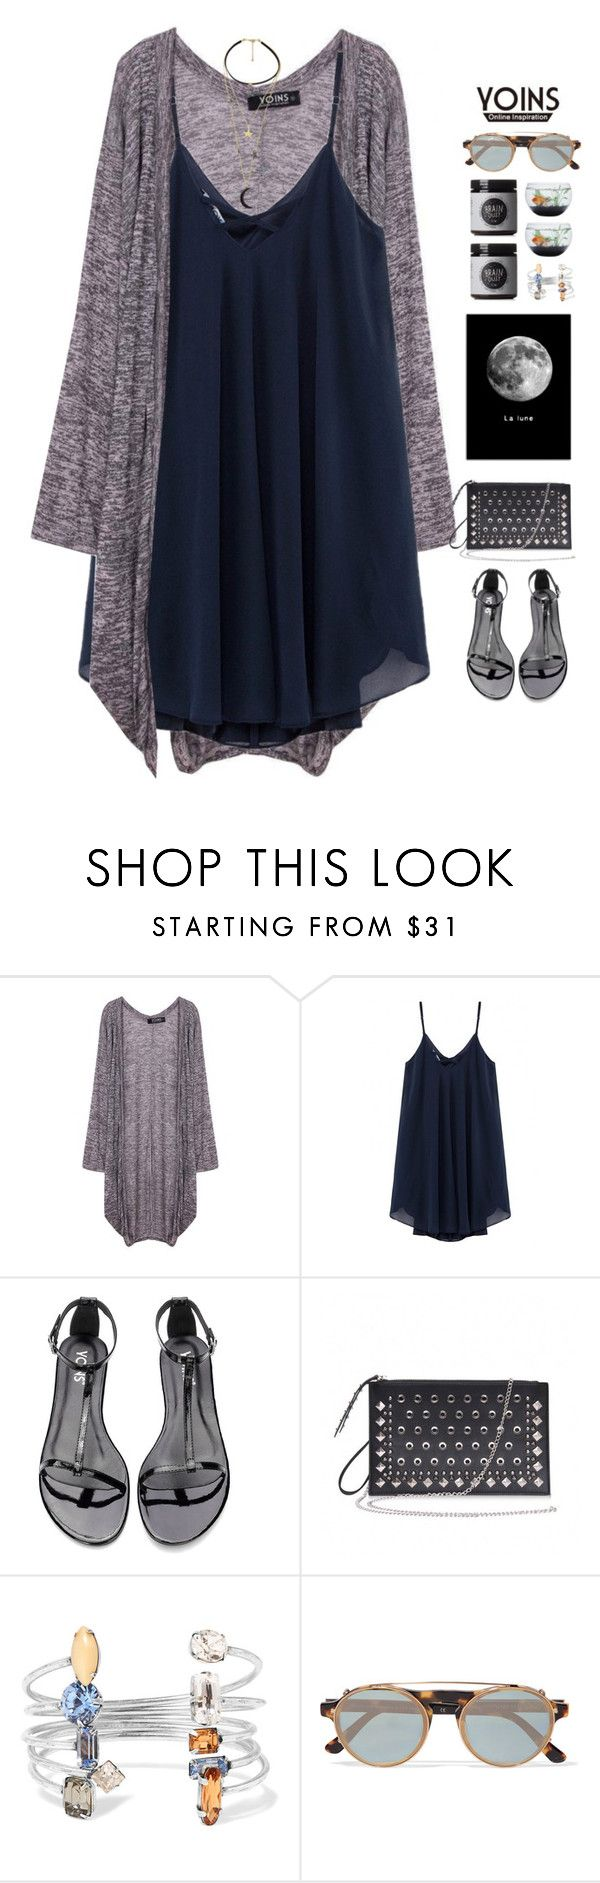 """""""YOINS *1700"""" by cutekawaiiandgoodlooking ❤ liked on Polyvore featuring DANNIJO, Westward Leaning, love, yoins and yoinscollection"""